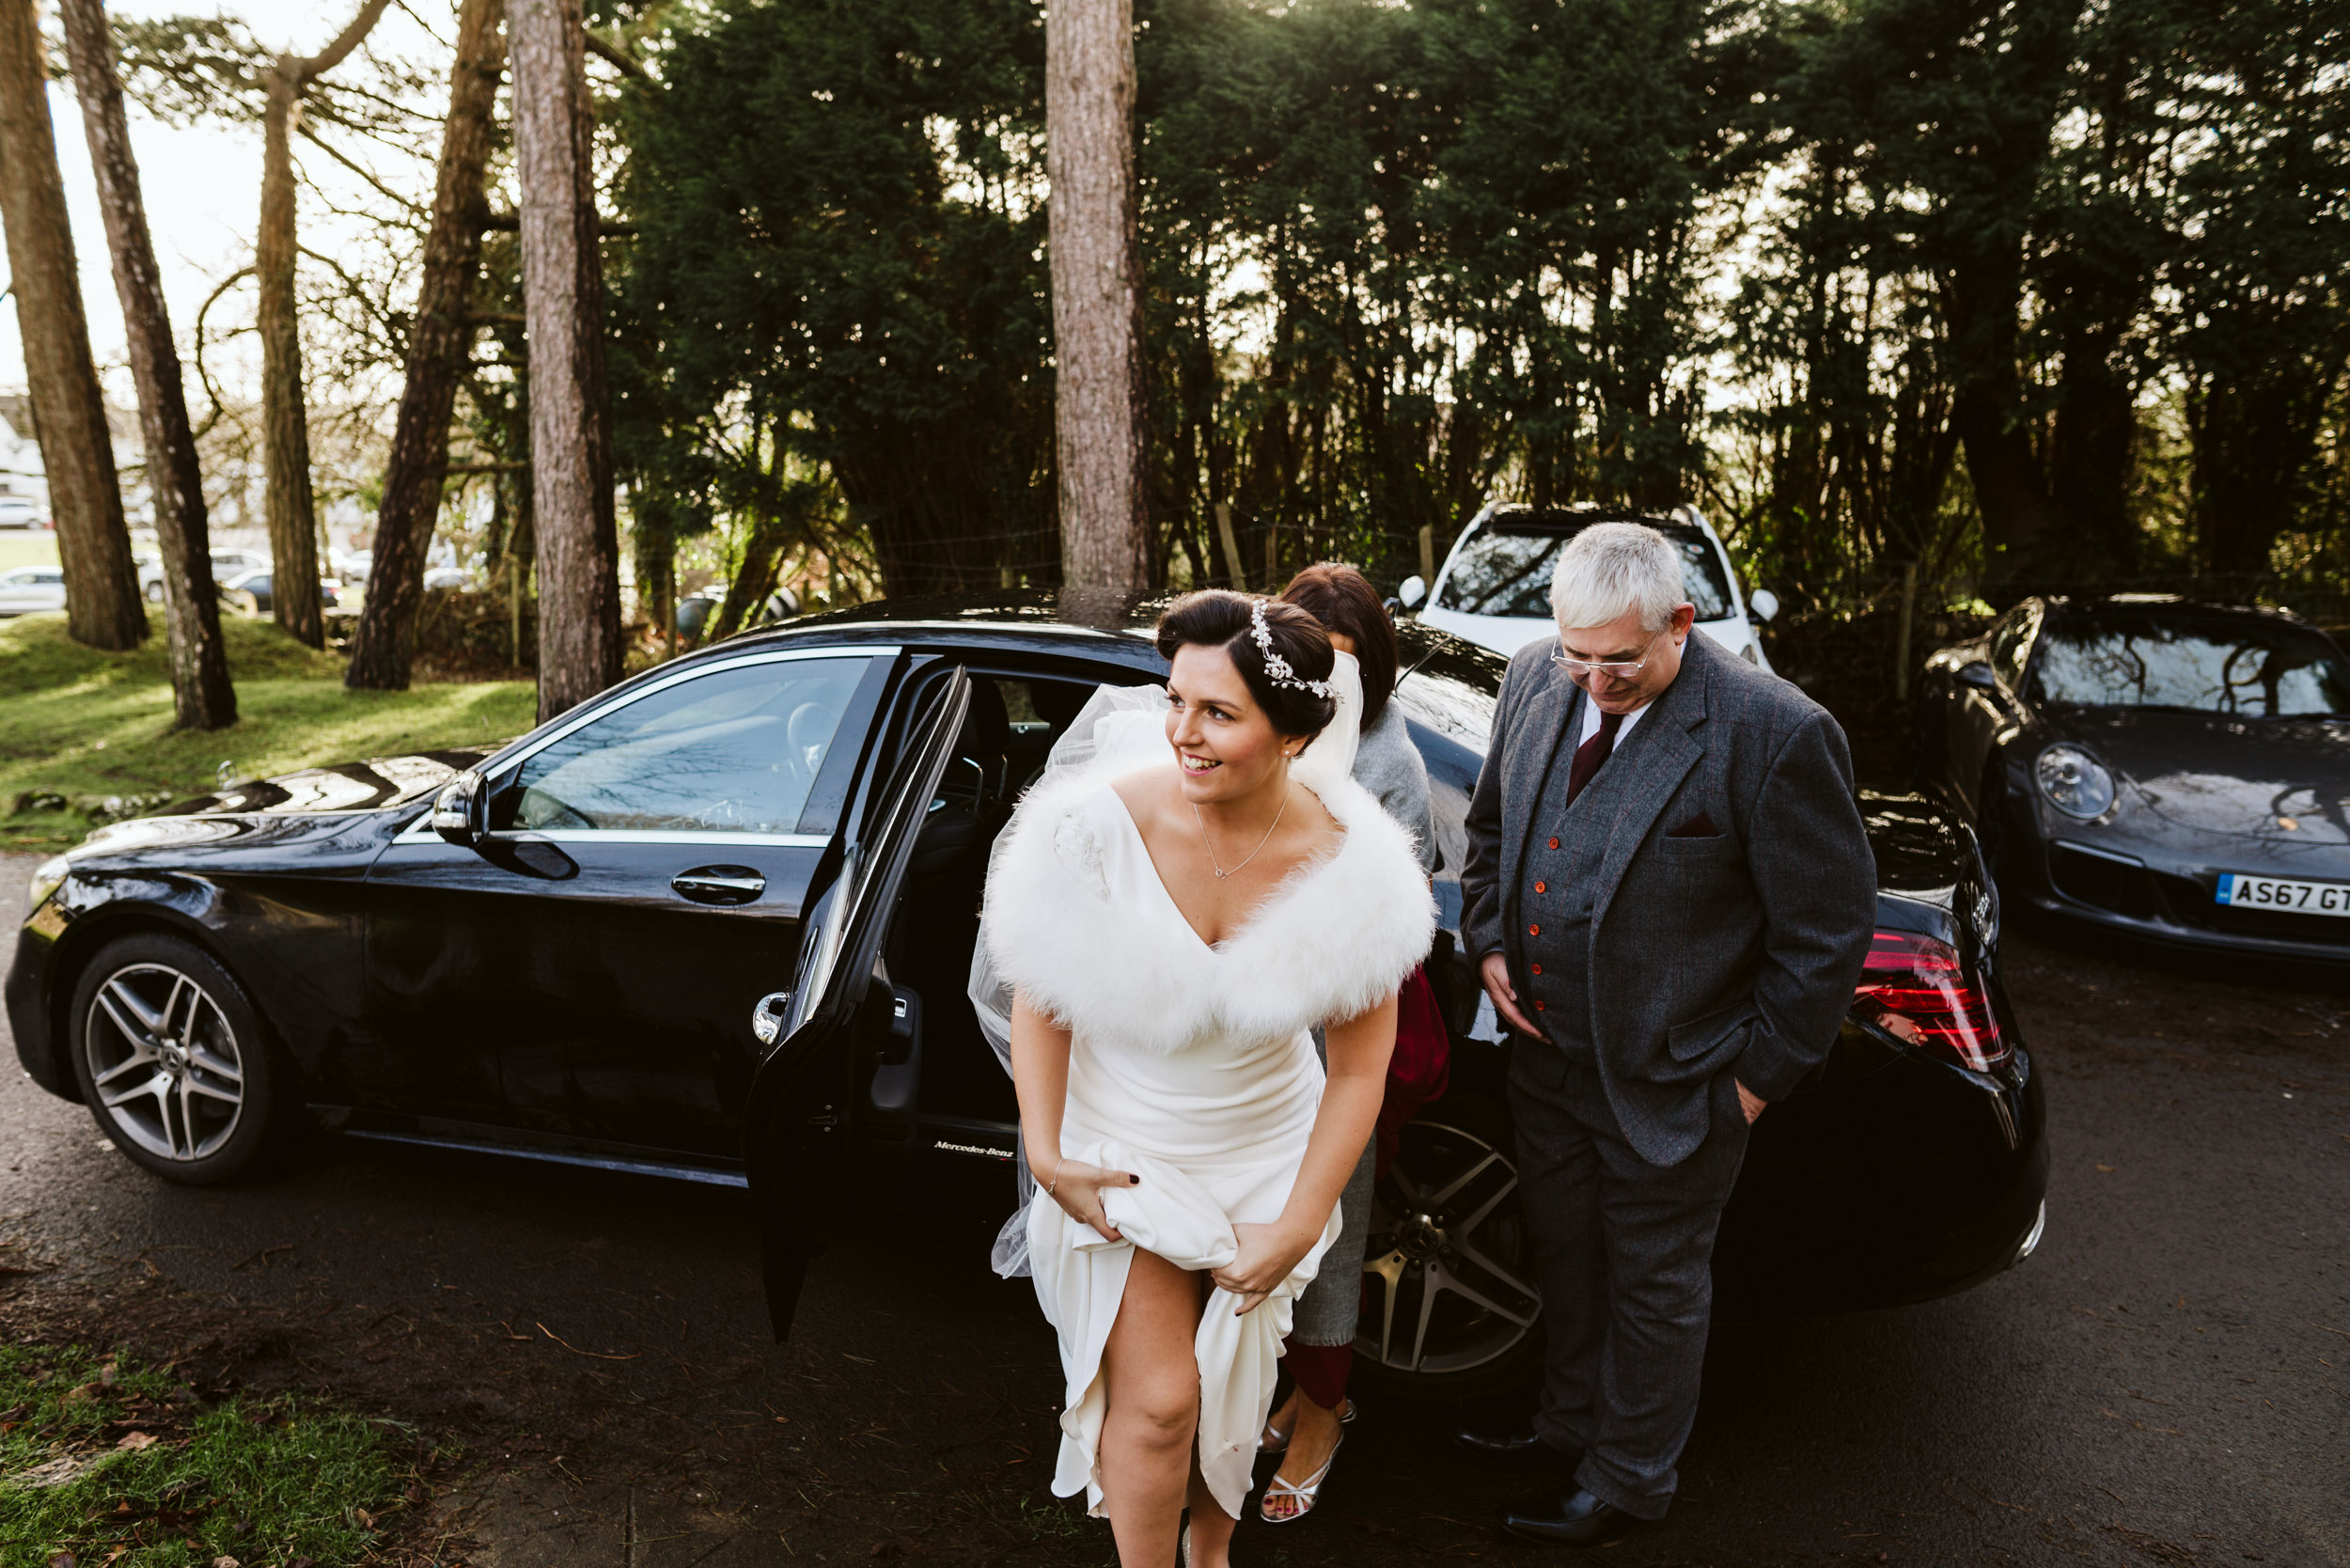 documentary wedding photography.jpg